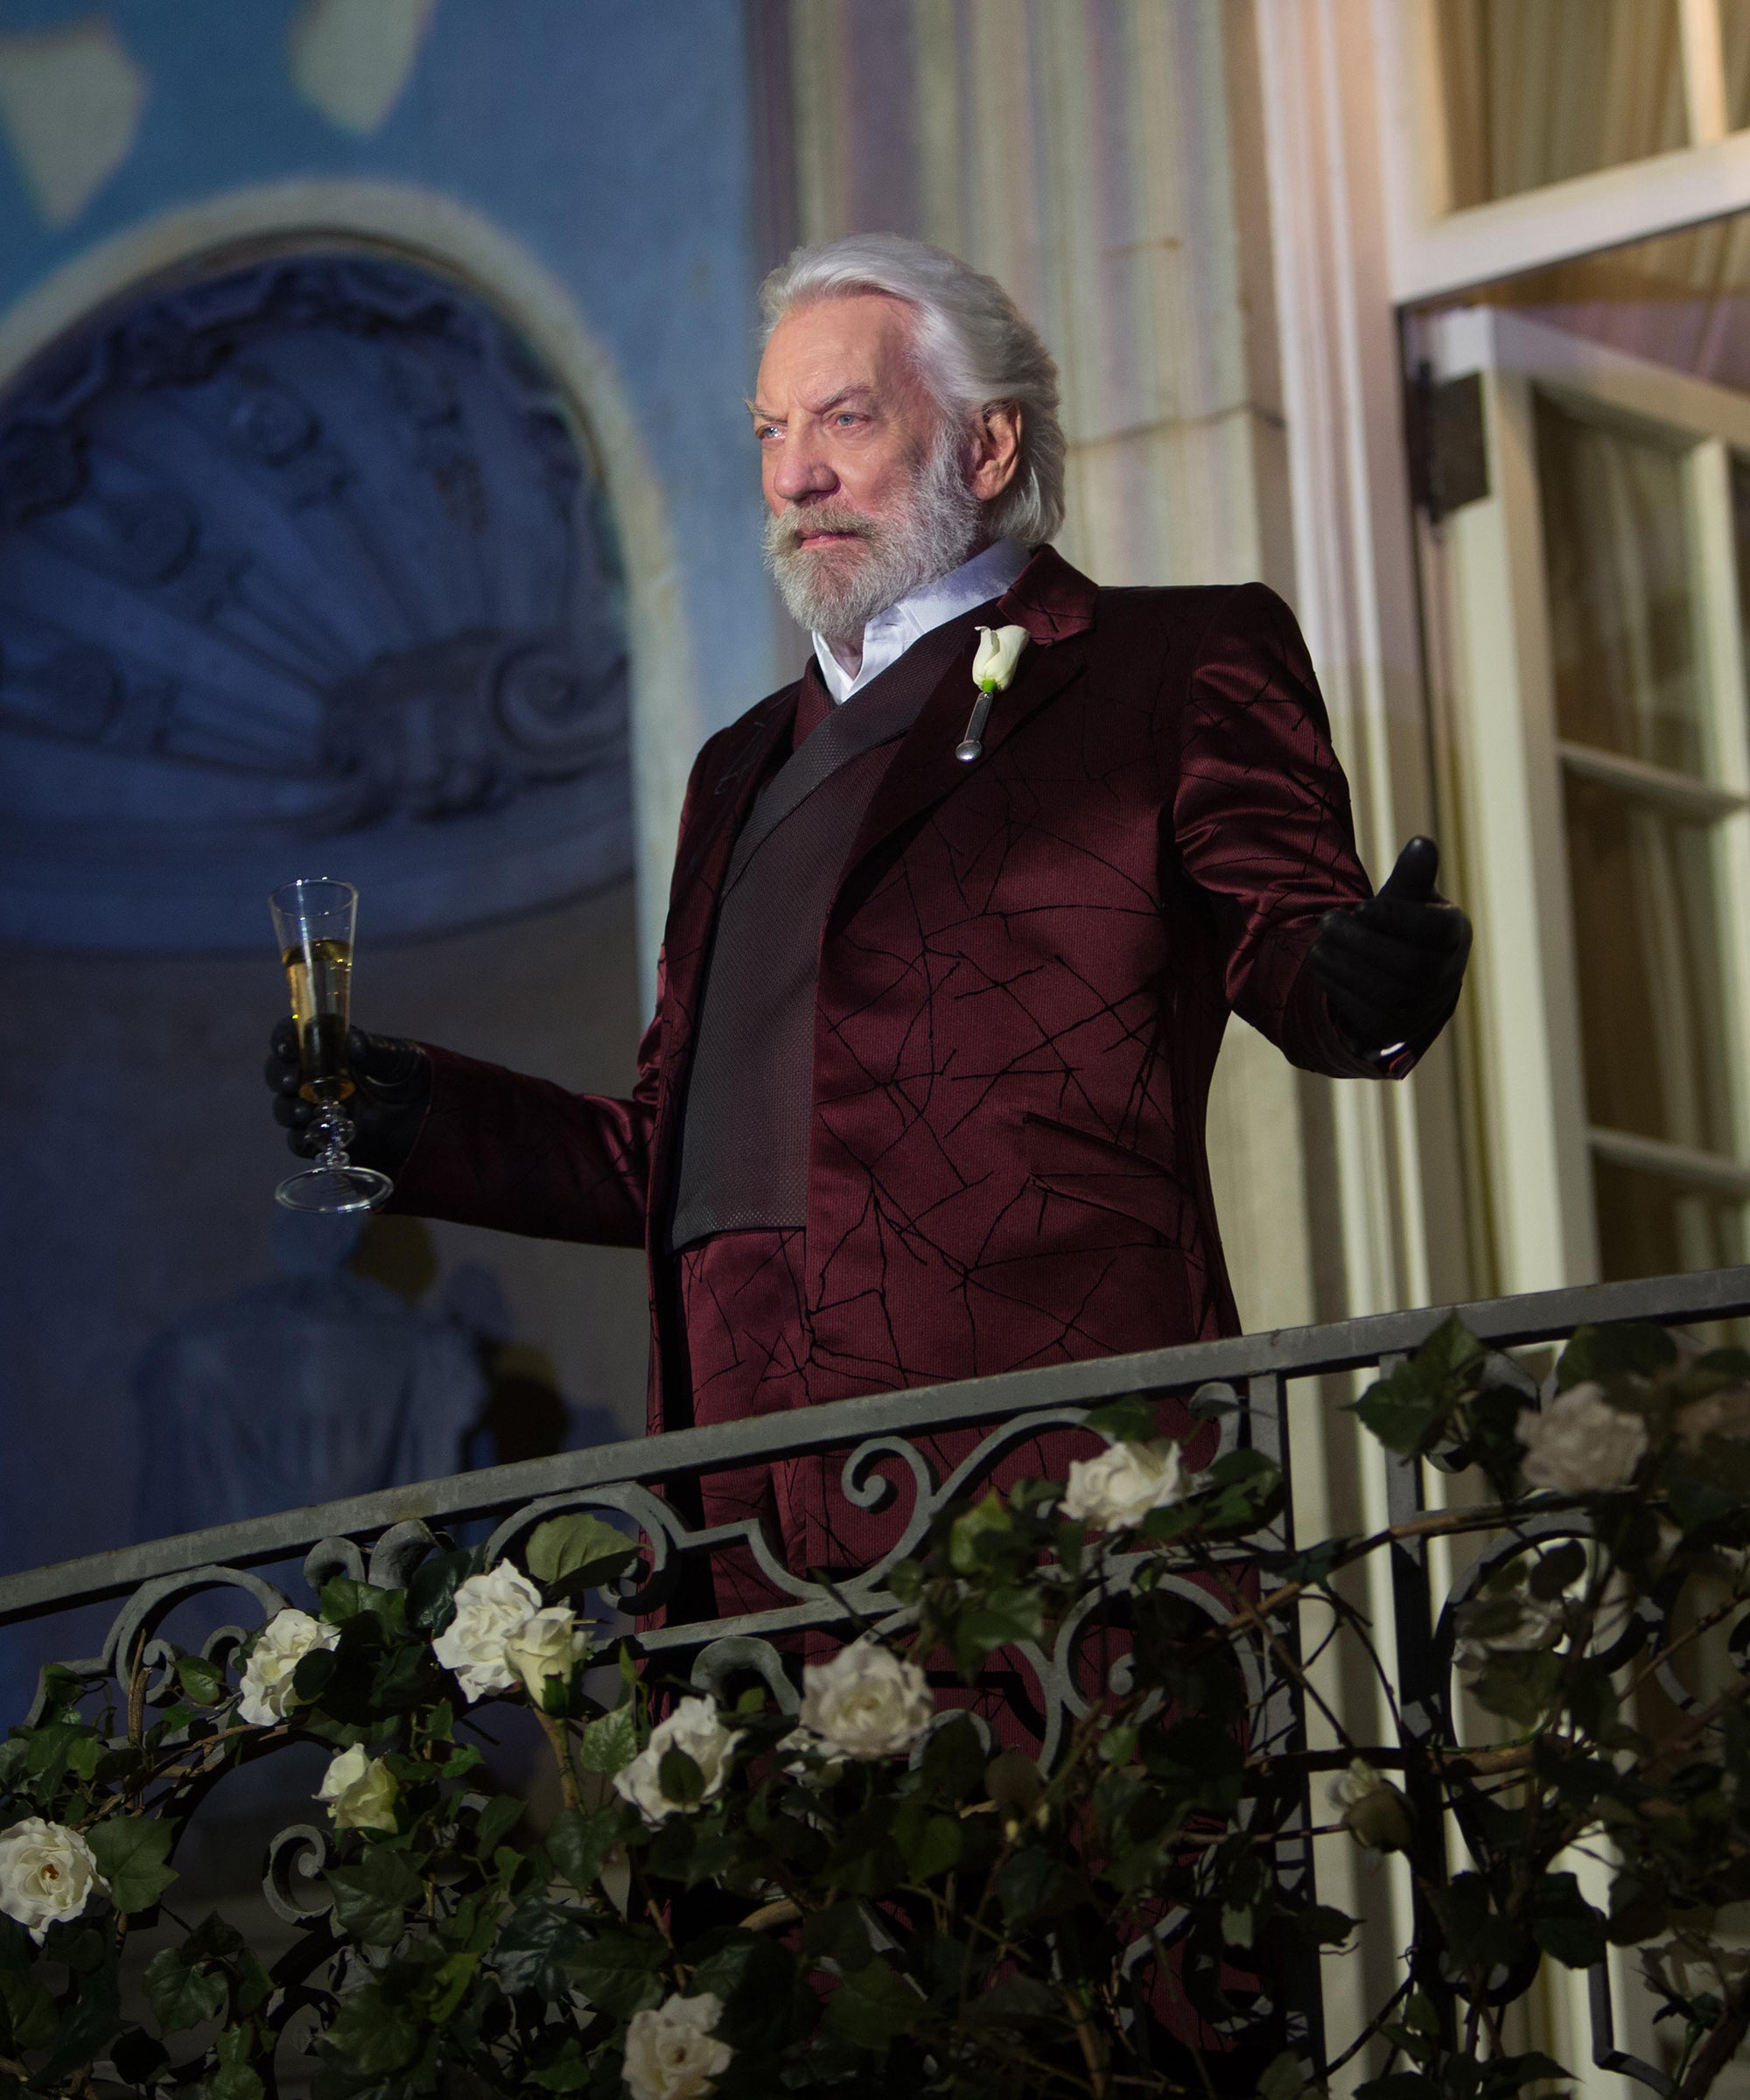 Hunger Games Prequel About President Snow Problematic